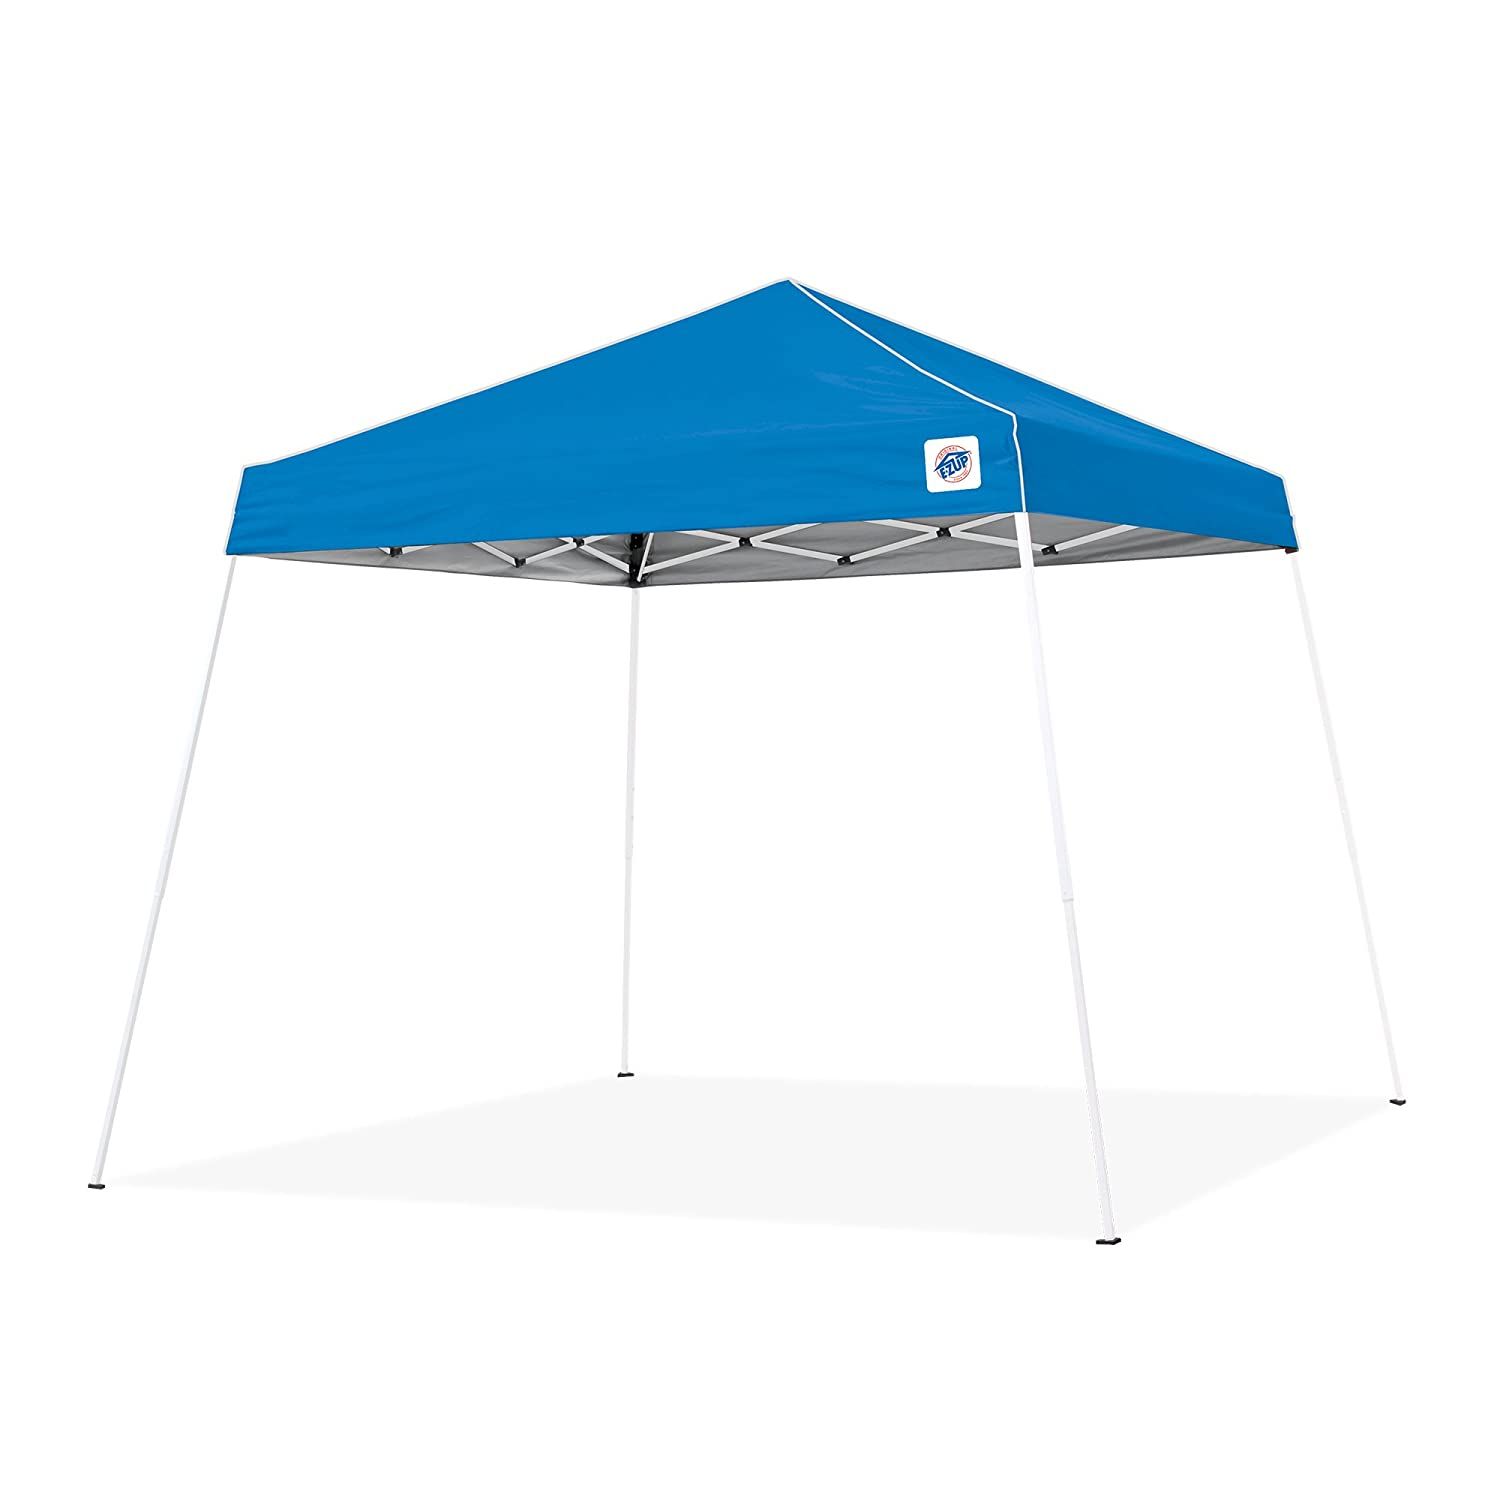 E-Z UP ...  sc 1 st  Amazon.com & Amazon.com: Canopies - Canopies Gazebos u0026 Pergolas: Patio Lawn ...